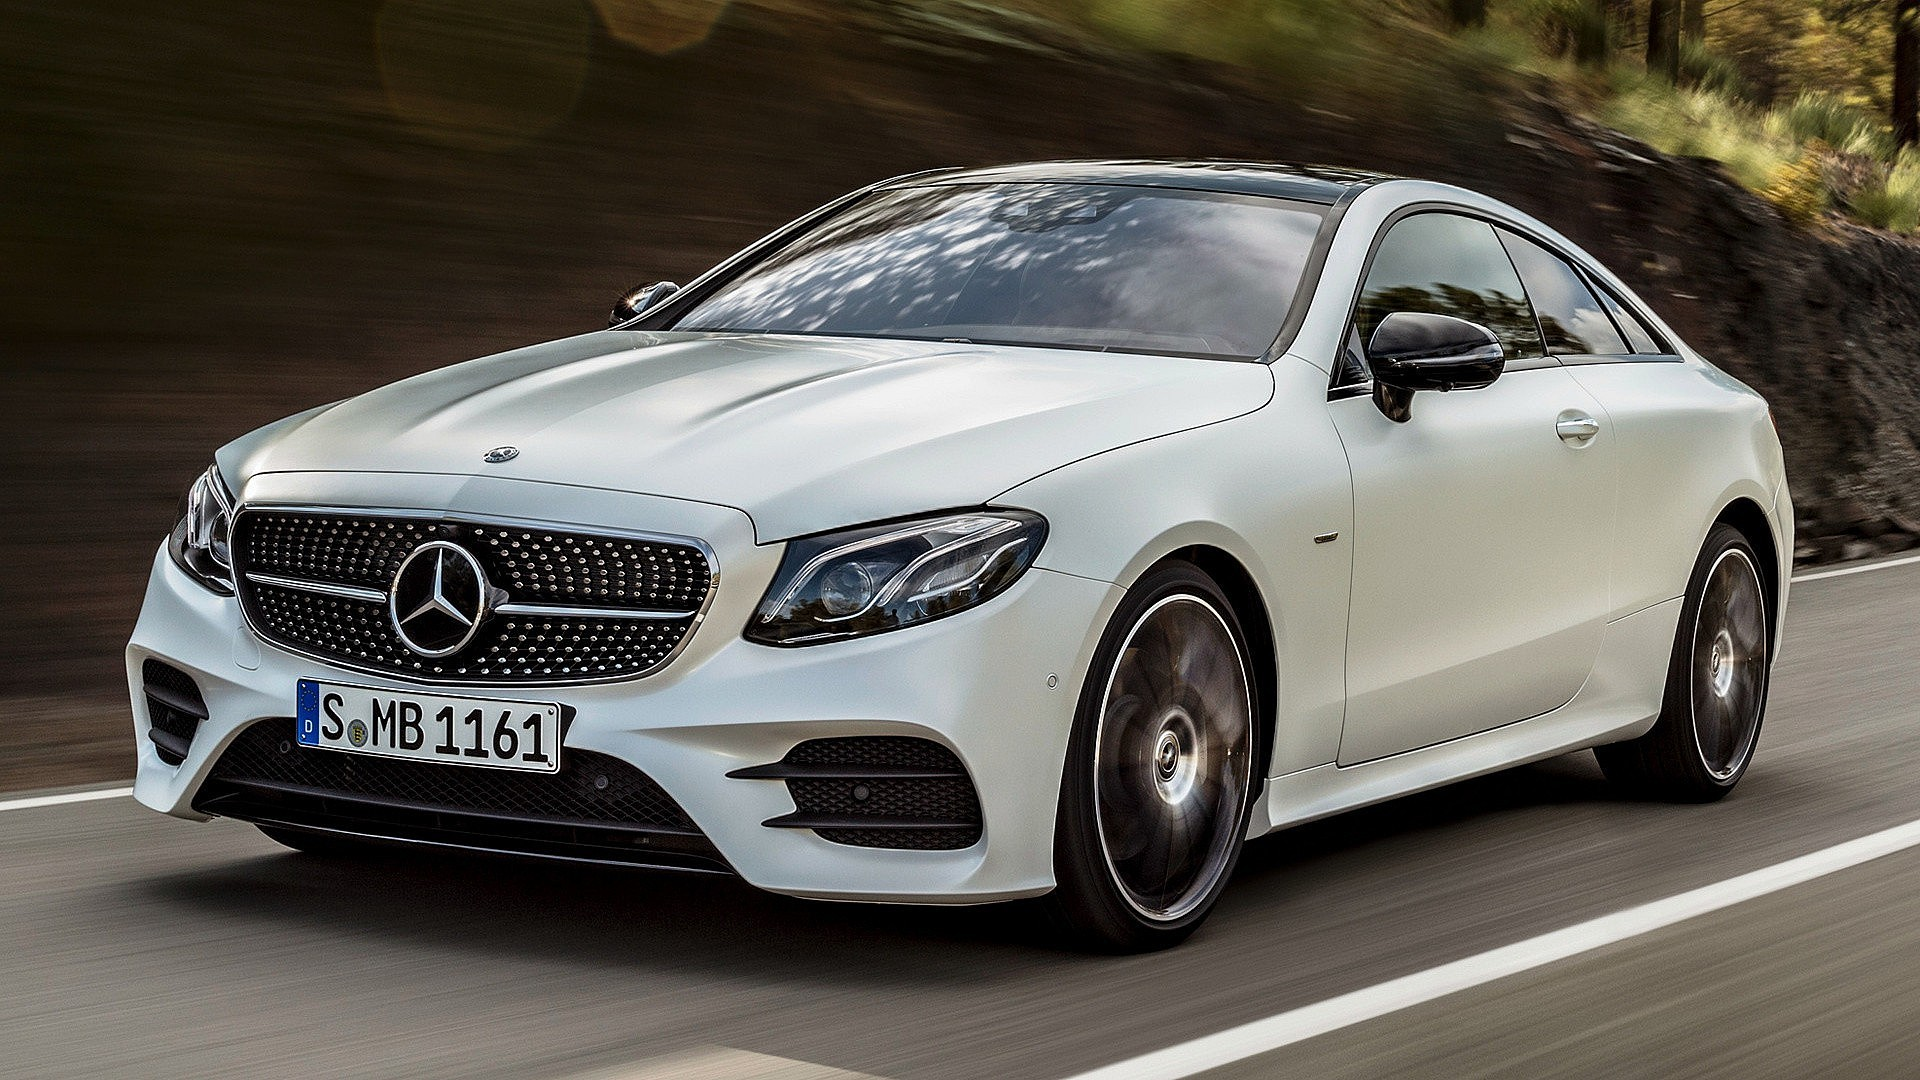 Mercedes Benz Amg Wallpaper 75 Pictures Images, Photos, Reviews